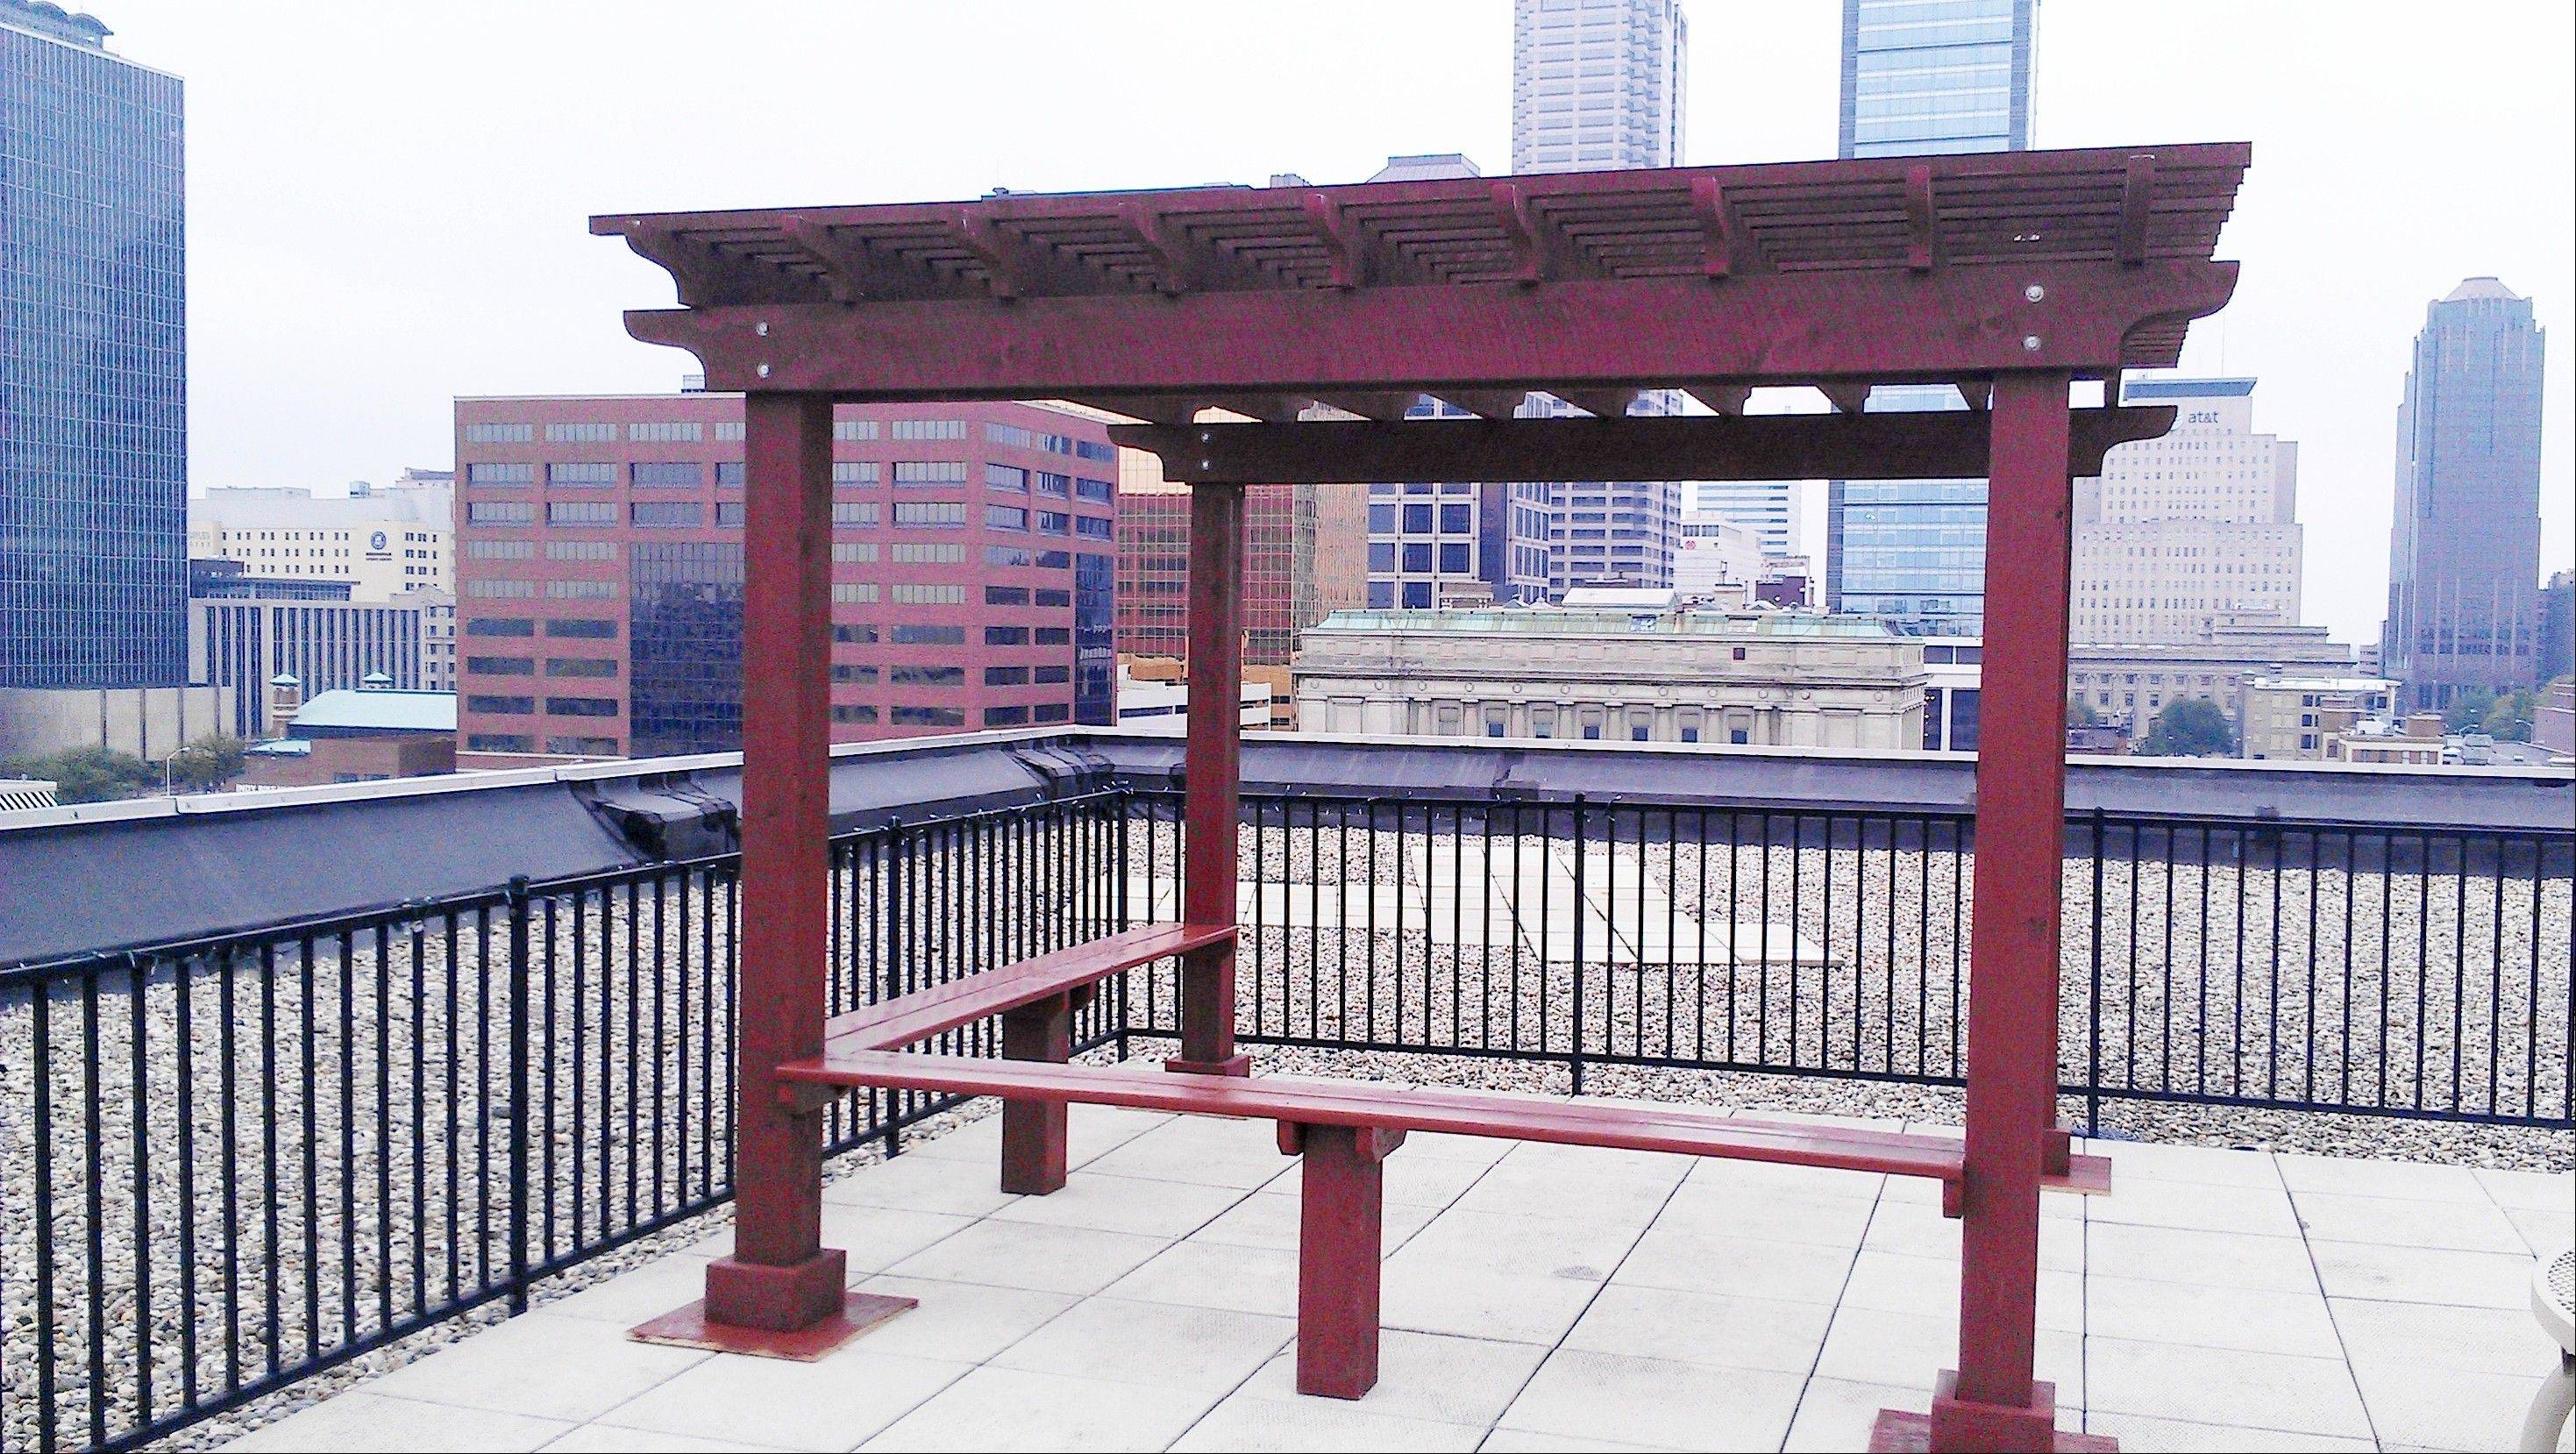 The rooftop pergola built from a Quality Built Backyards kit was installed in the city.